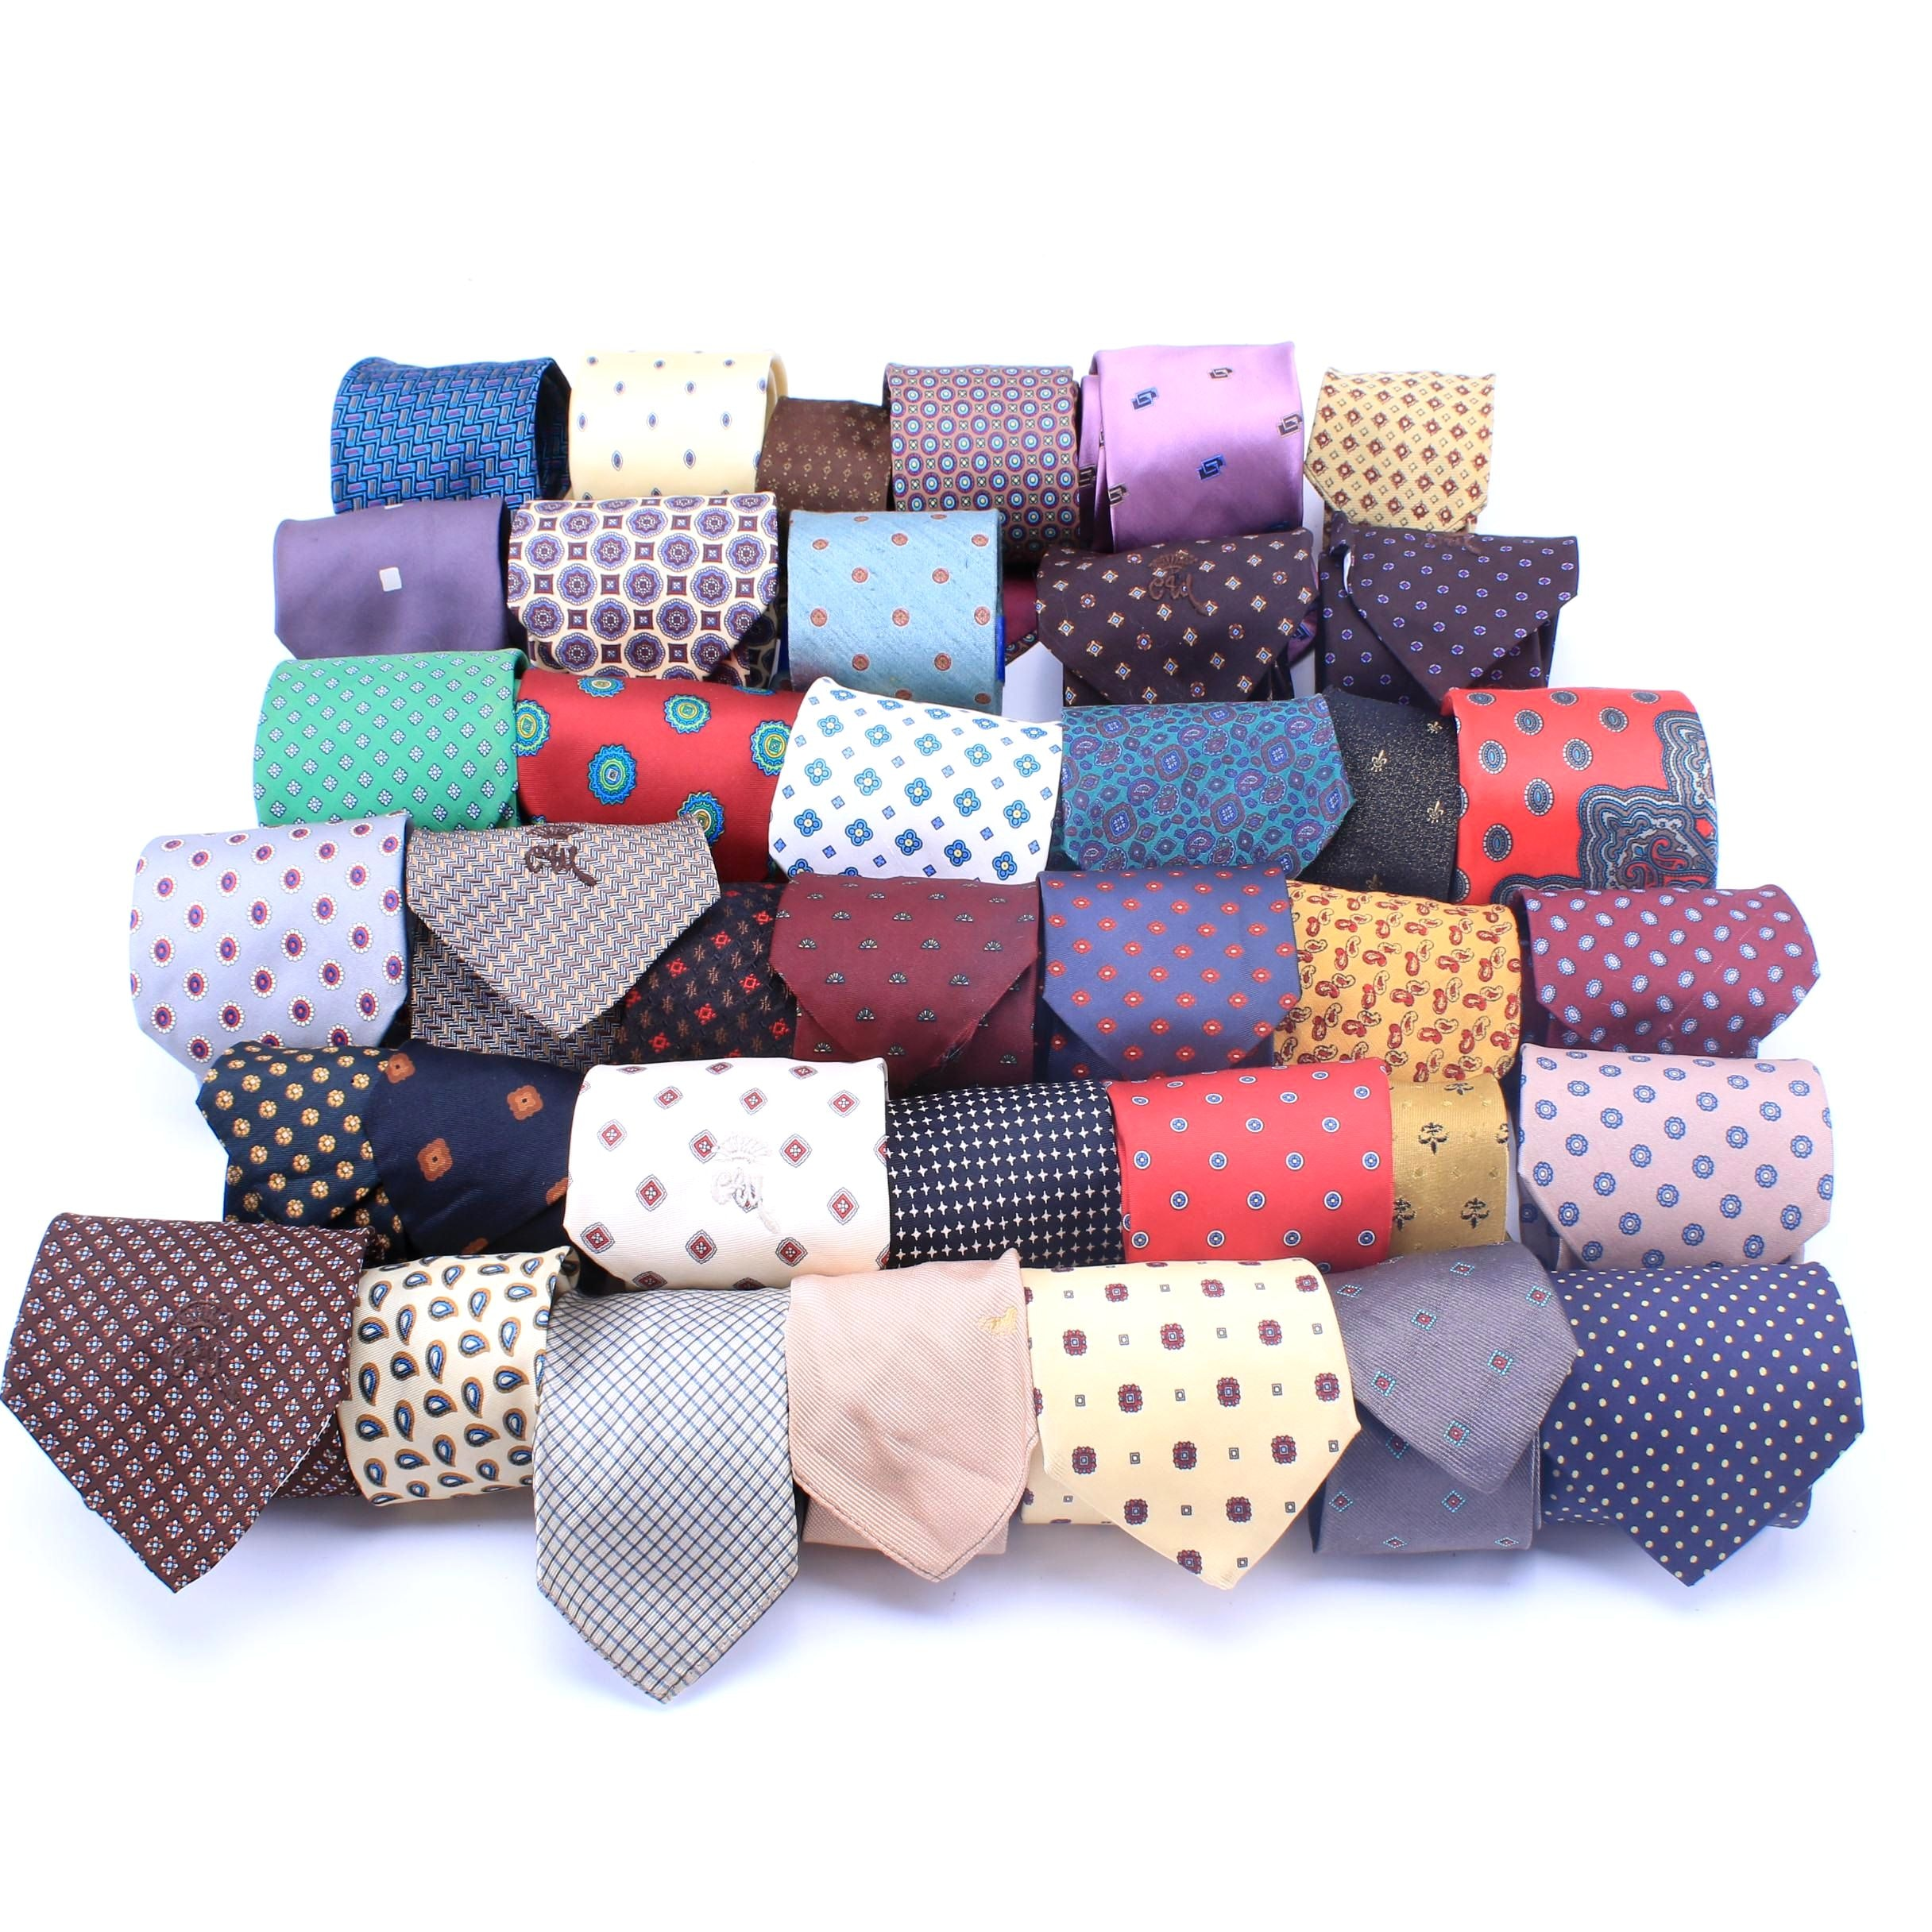 Men's Patterned Tie Collection Featuring Valentino, Yves Saint Laurent and More